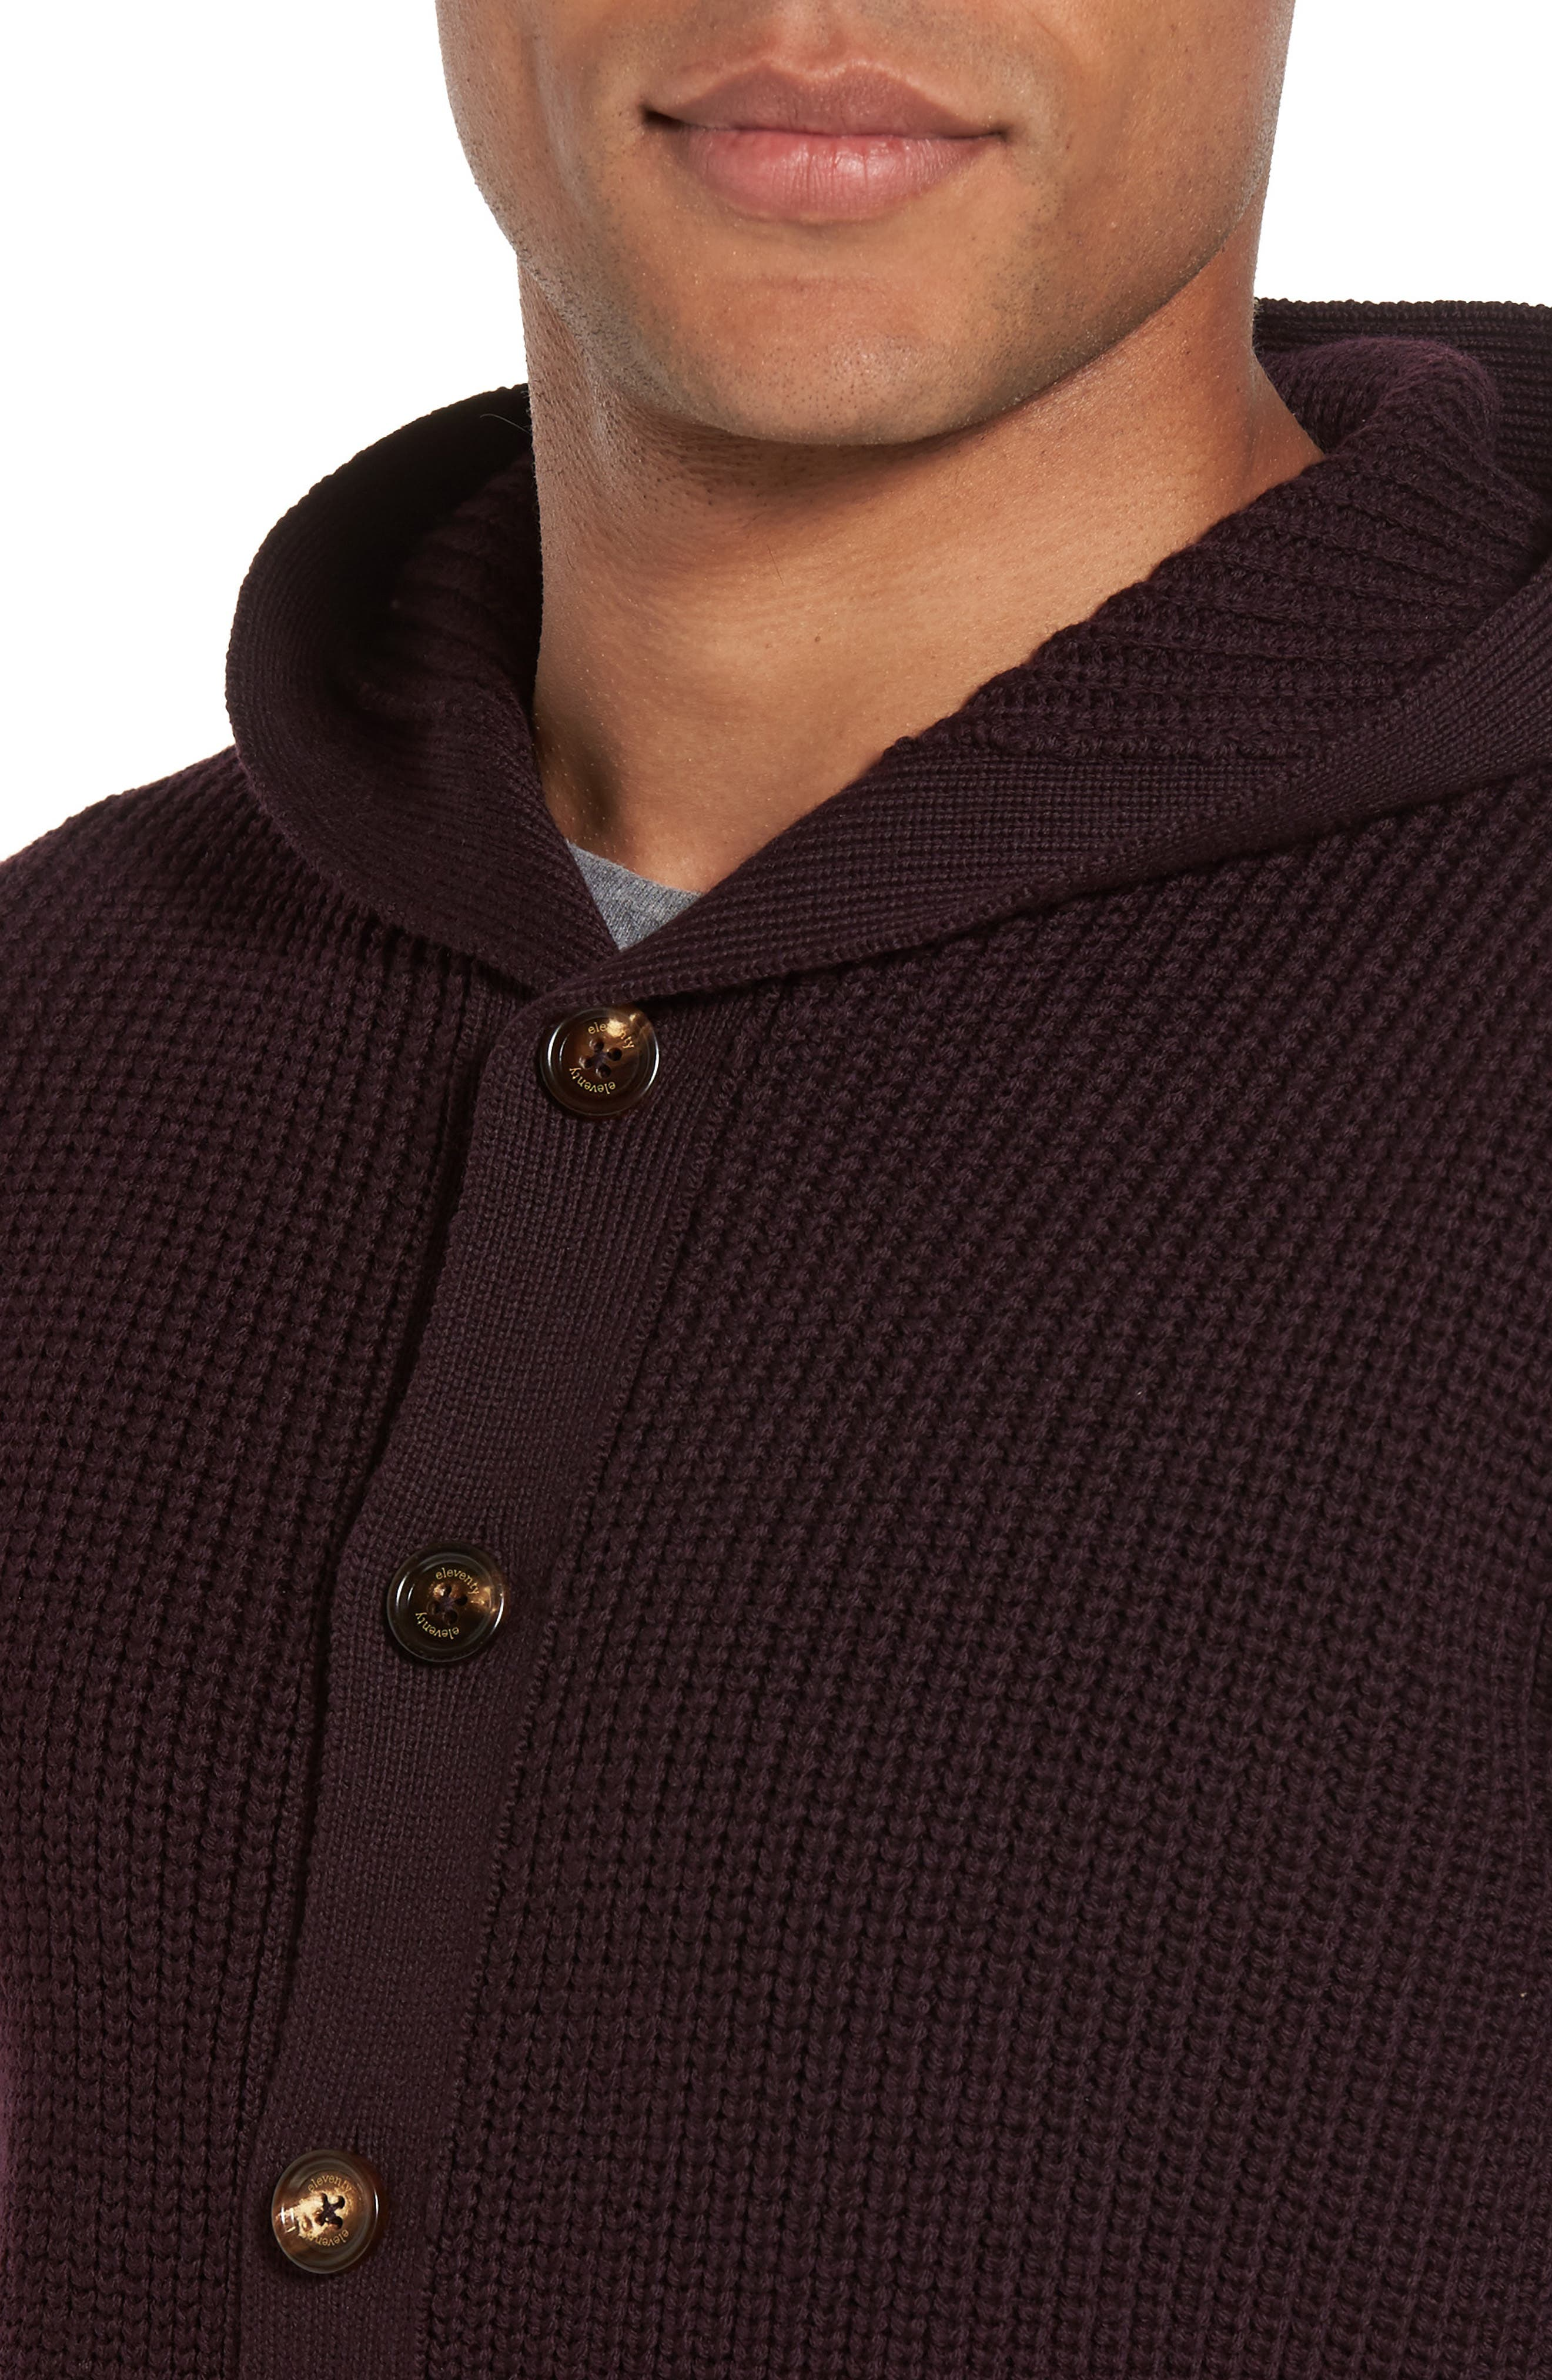 Ribbed Hooded Sweater,                             Alternate thumbnail 4, color,                             930